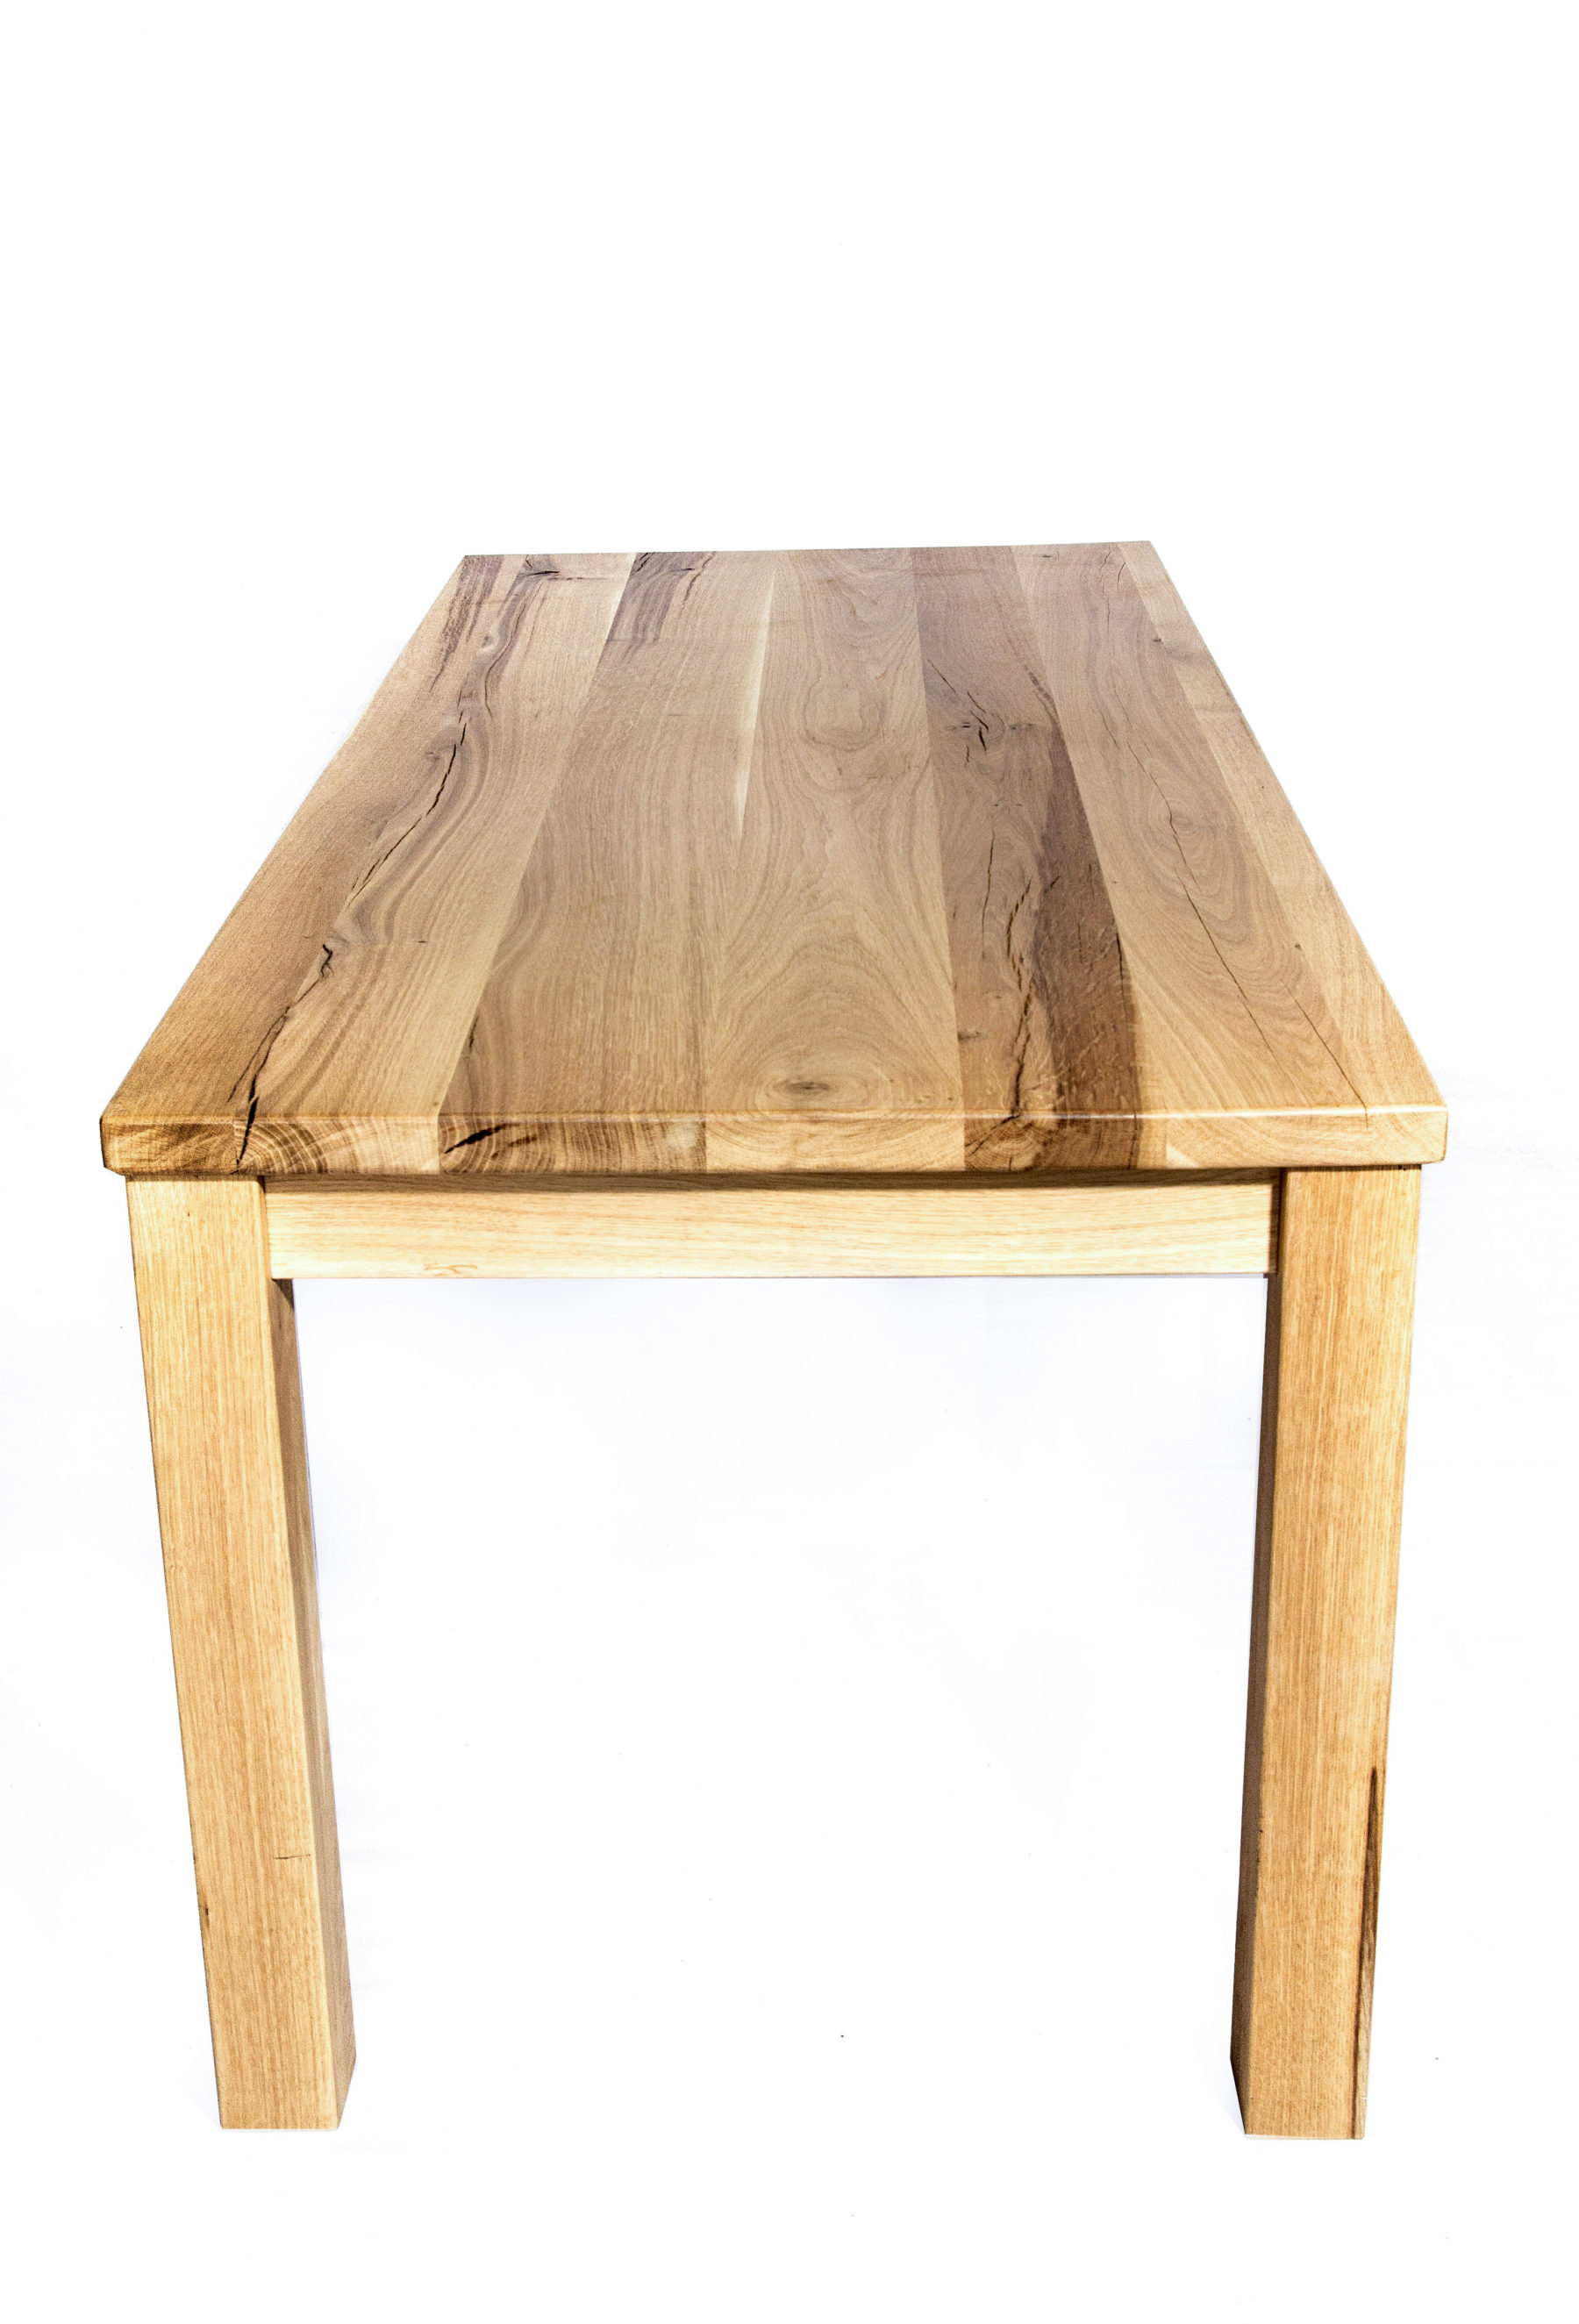 cotswold dining millinery dalrymple the works oak products dalryple table